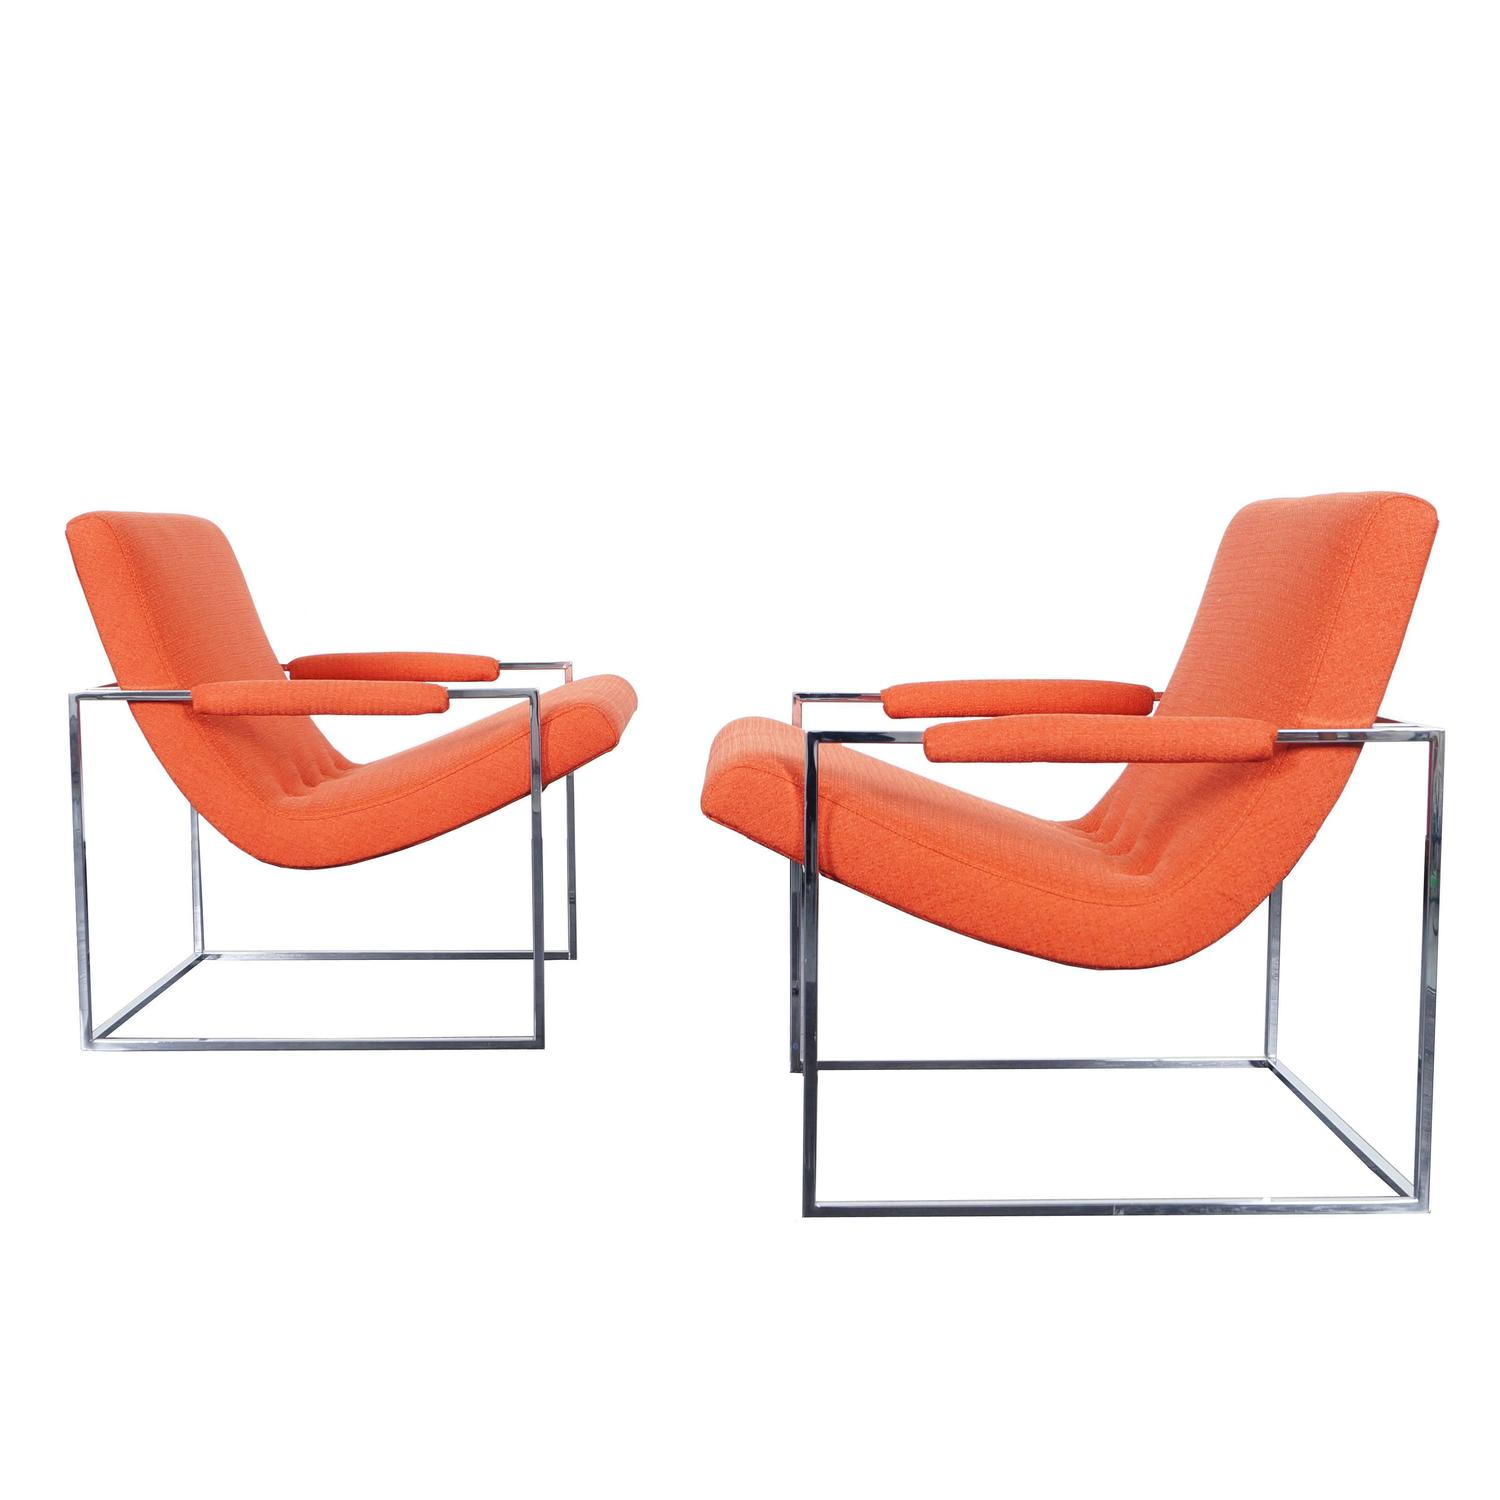 Vintage Chrome Lounge Chairs by Milo Baughman For Sale at